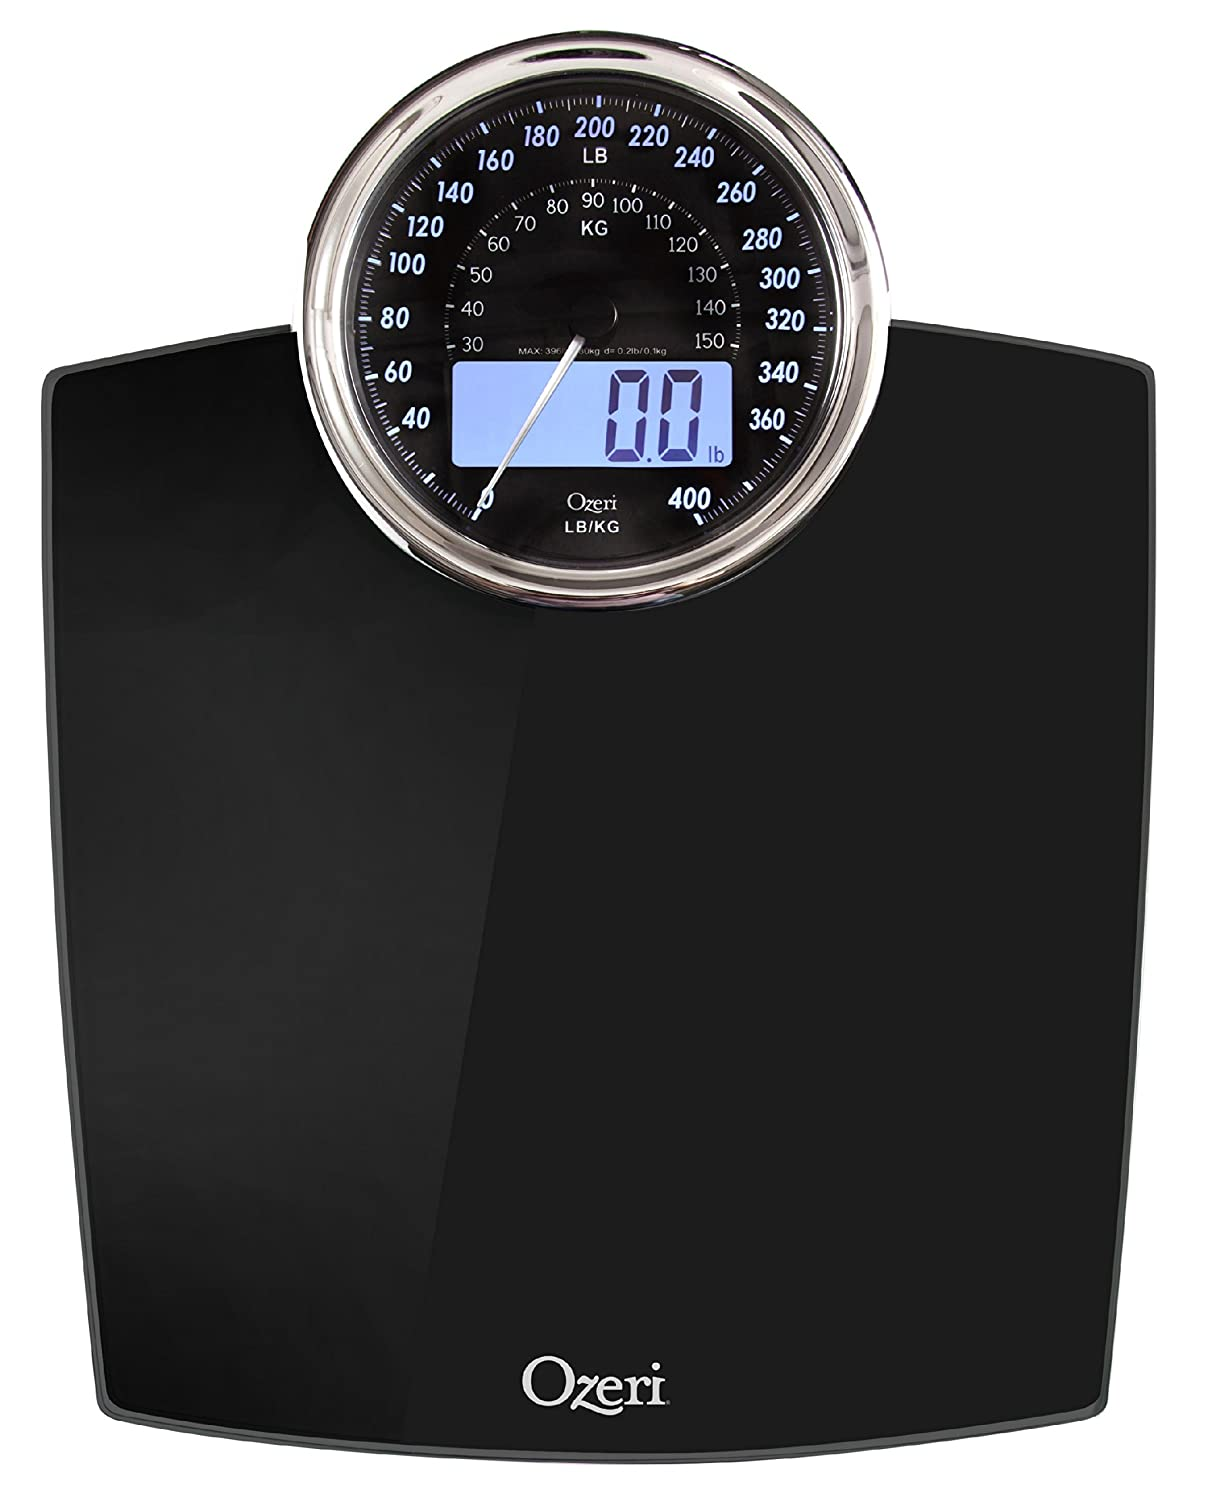 Ozeri Rev Digital Bathroom Scale With Electro Mechanical Weight Dial Black Amazoncouk Health Personal Care